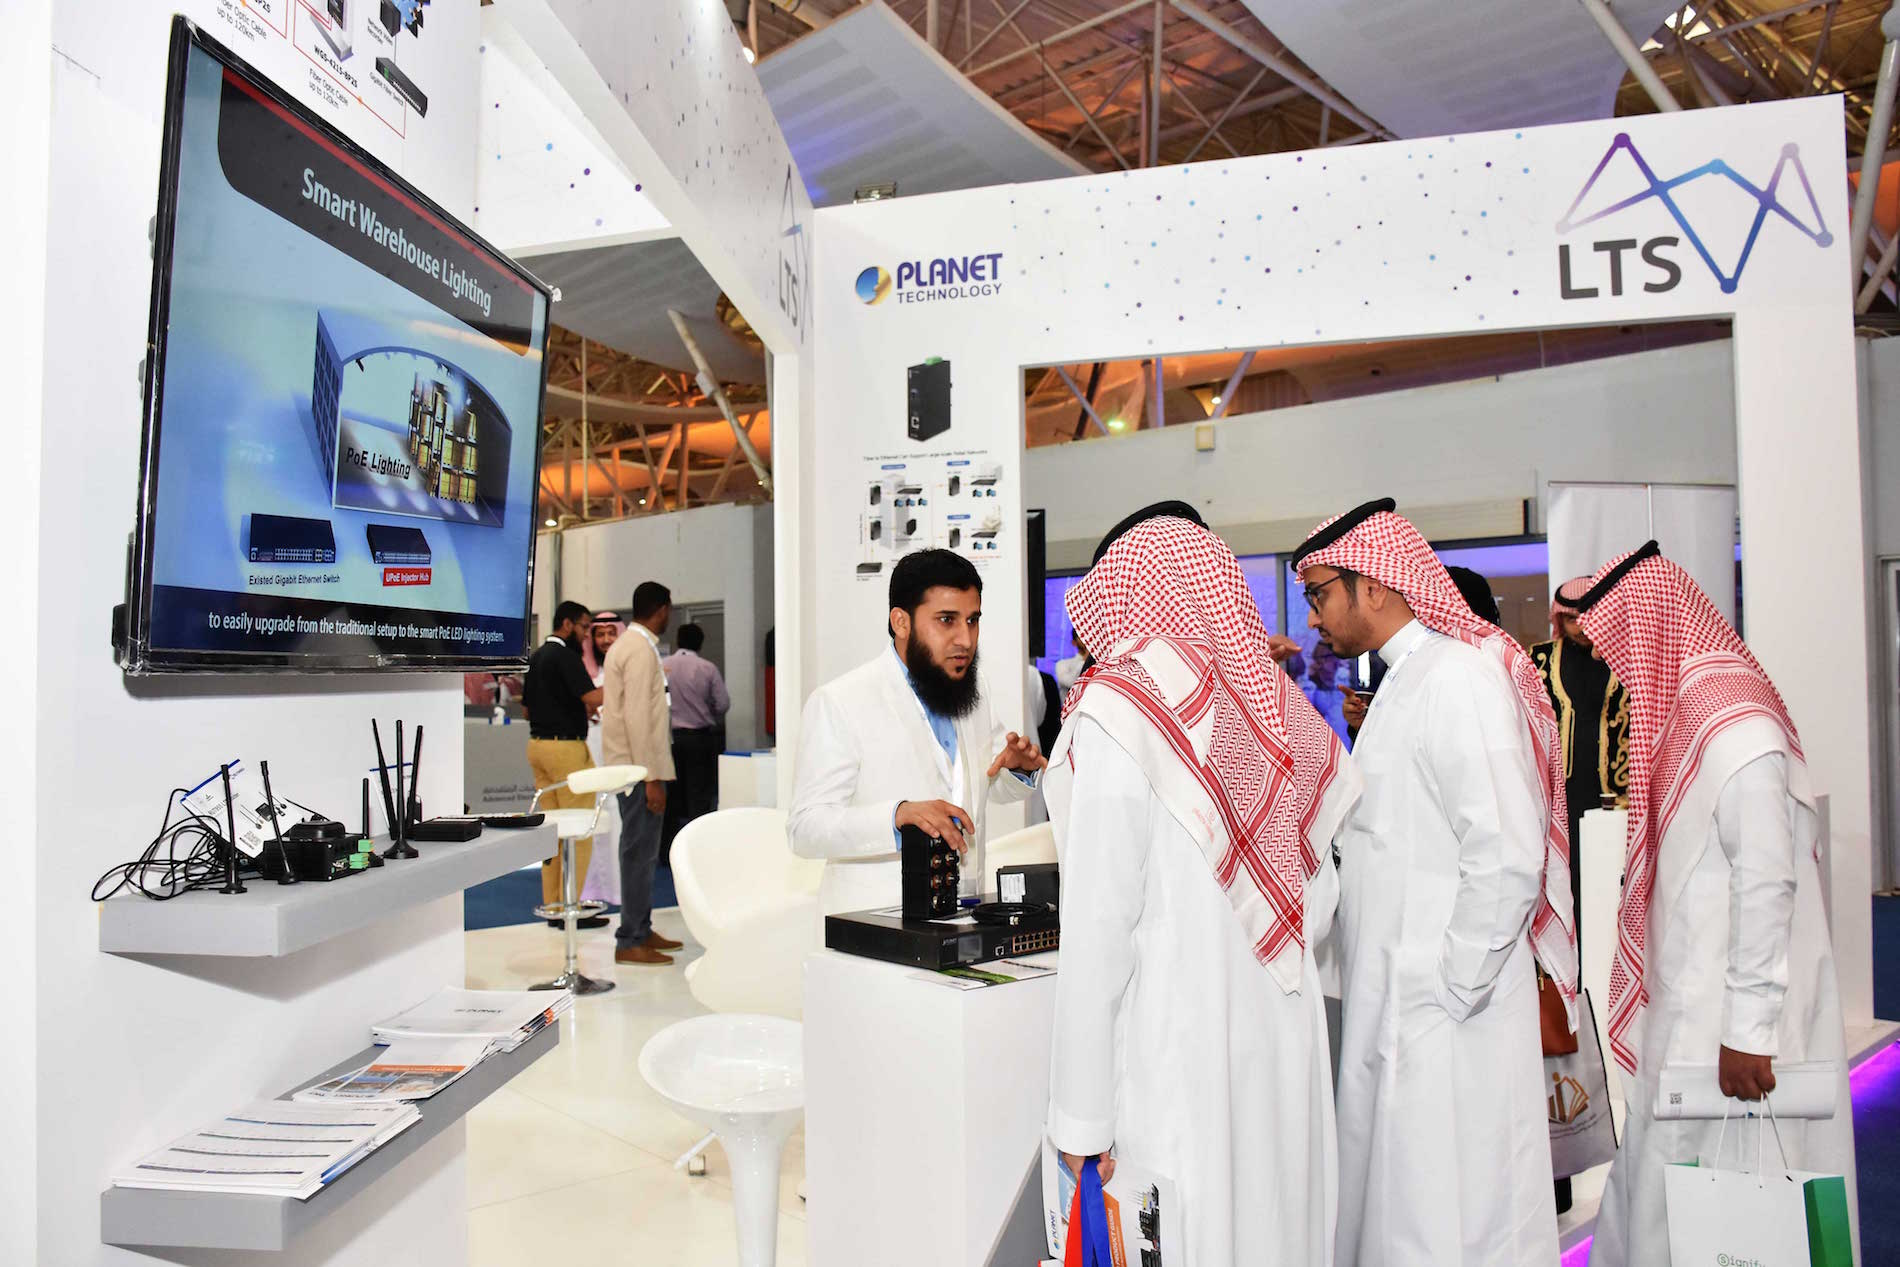 Saudi IoT firm Logistics Technology Services reveals plans for GCC expansion